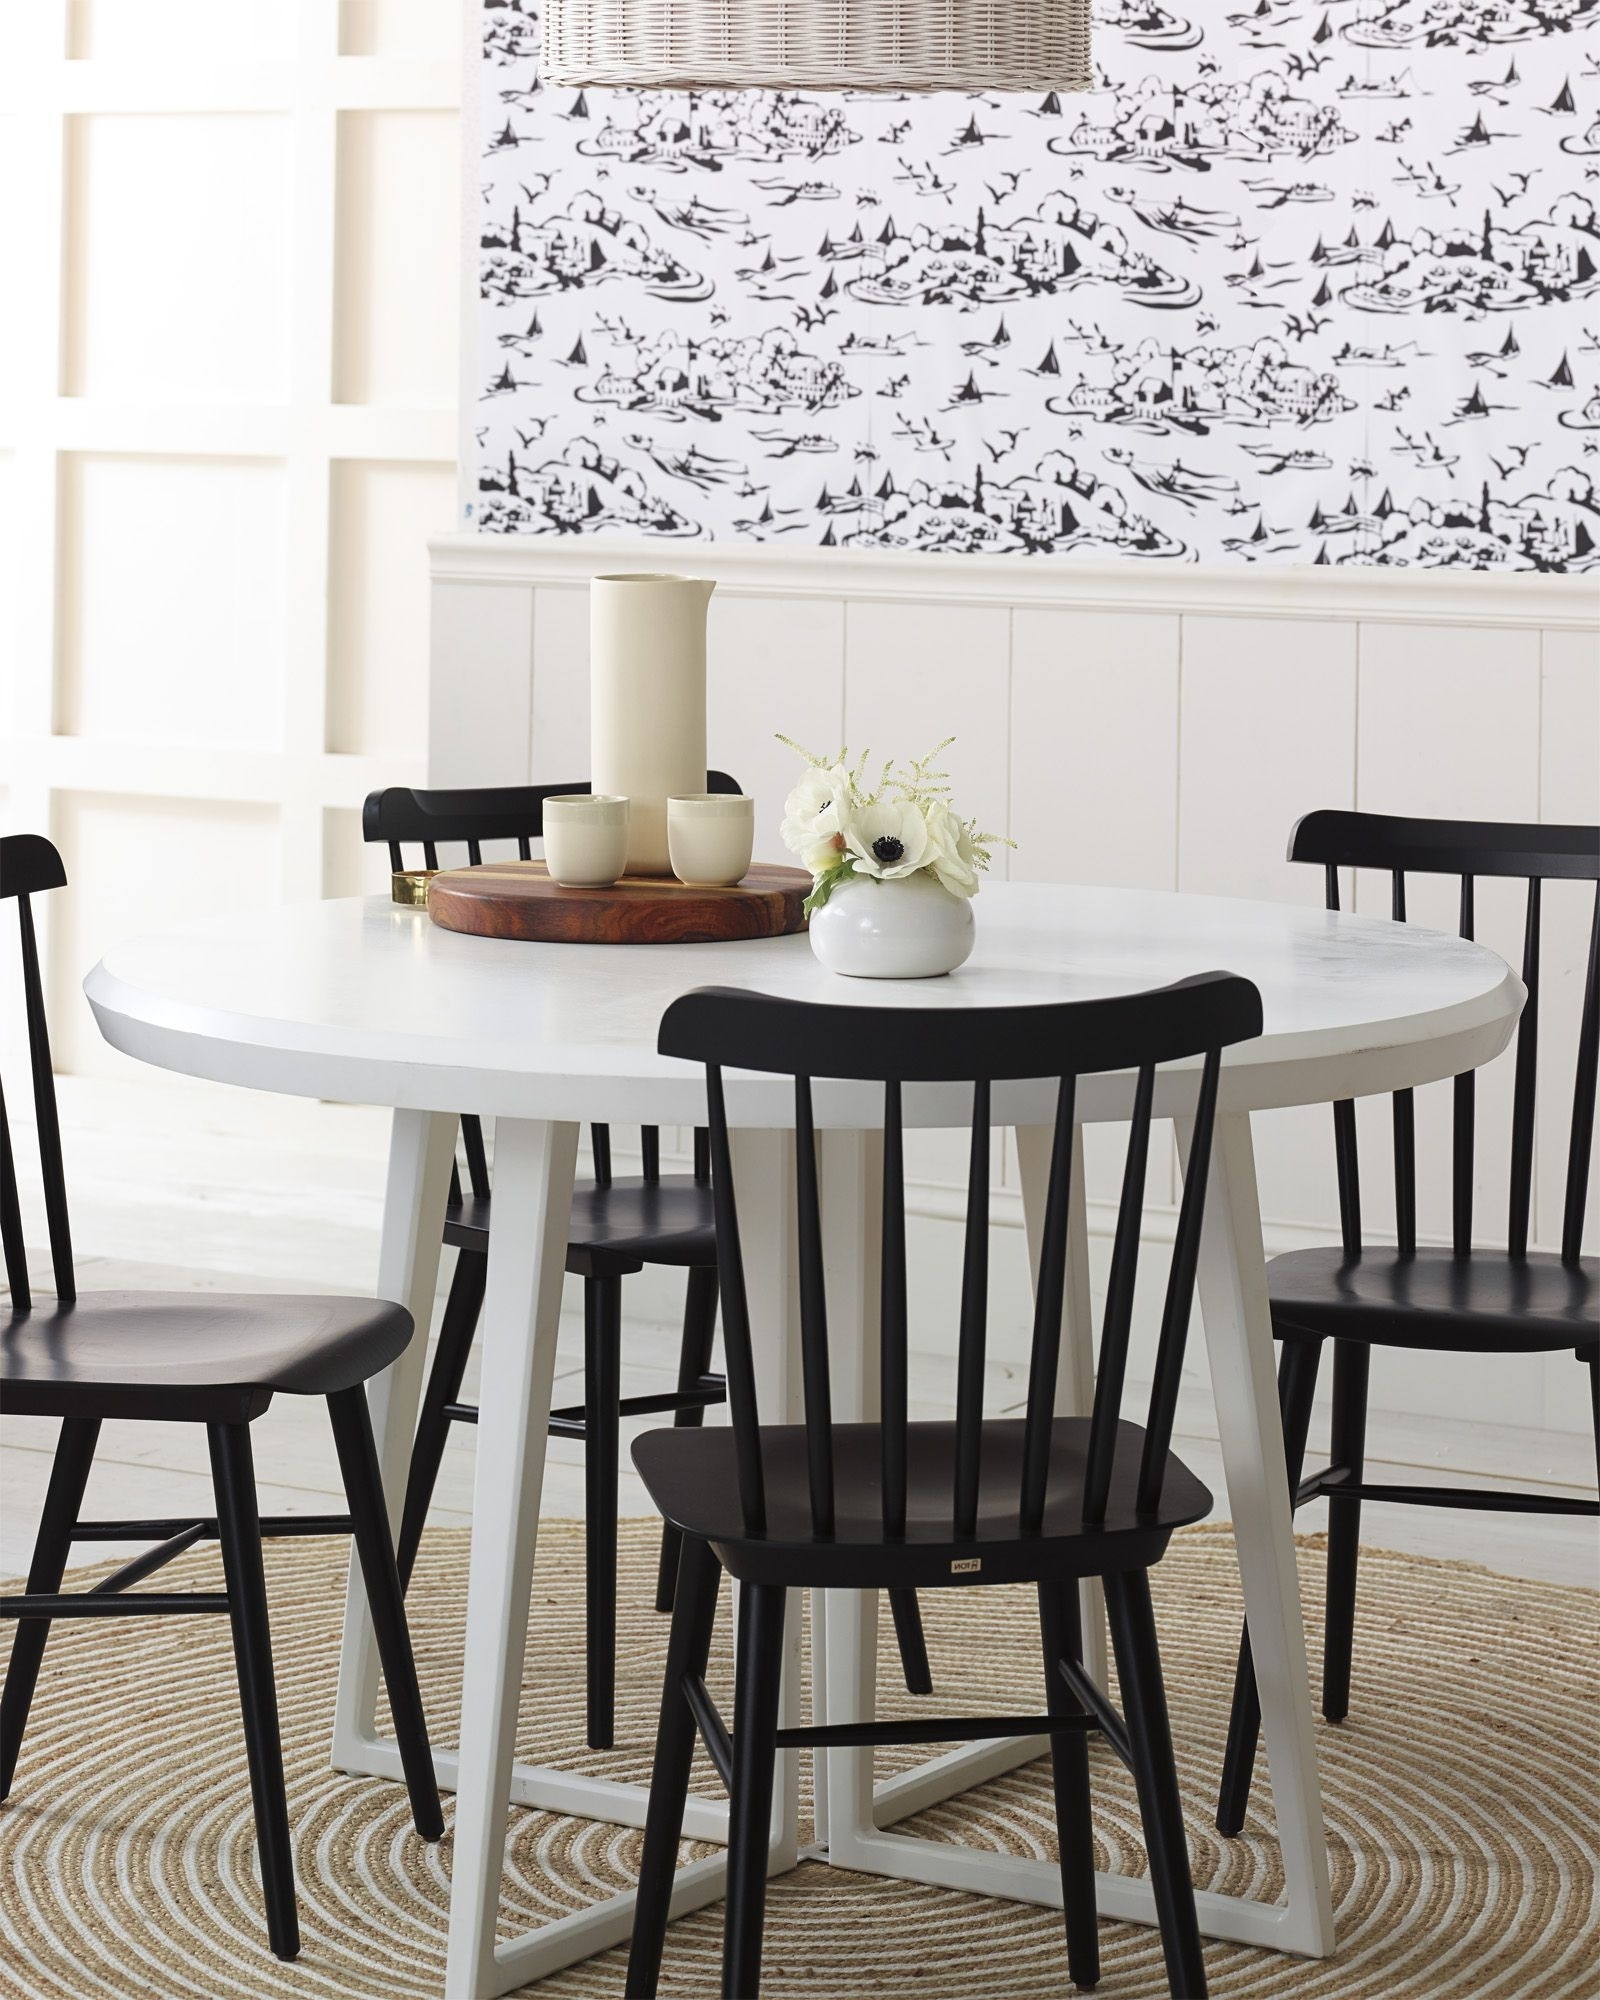 Irondale Diaw Counterstool In Havana In Newest Grady 5 Piece Round Dining Sets (View 12 of 25)